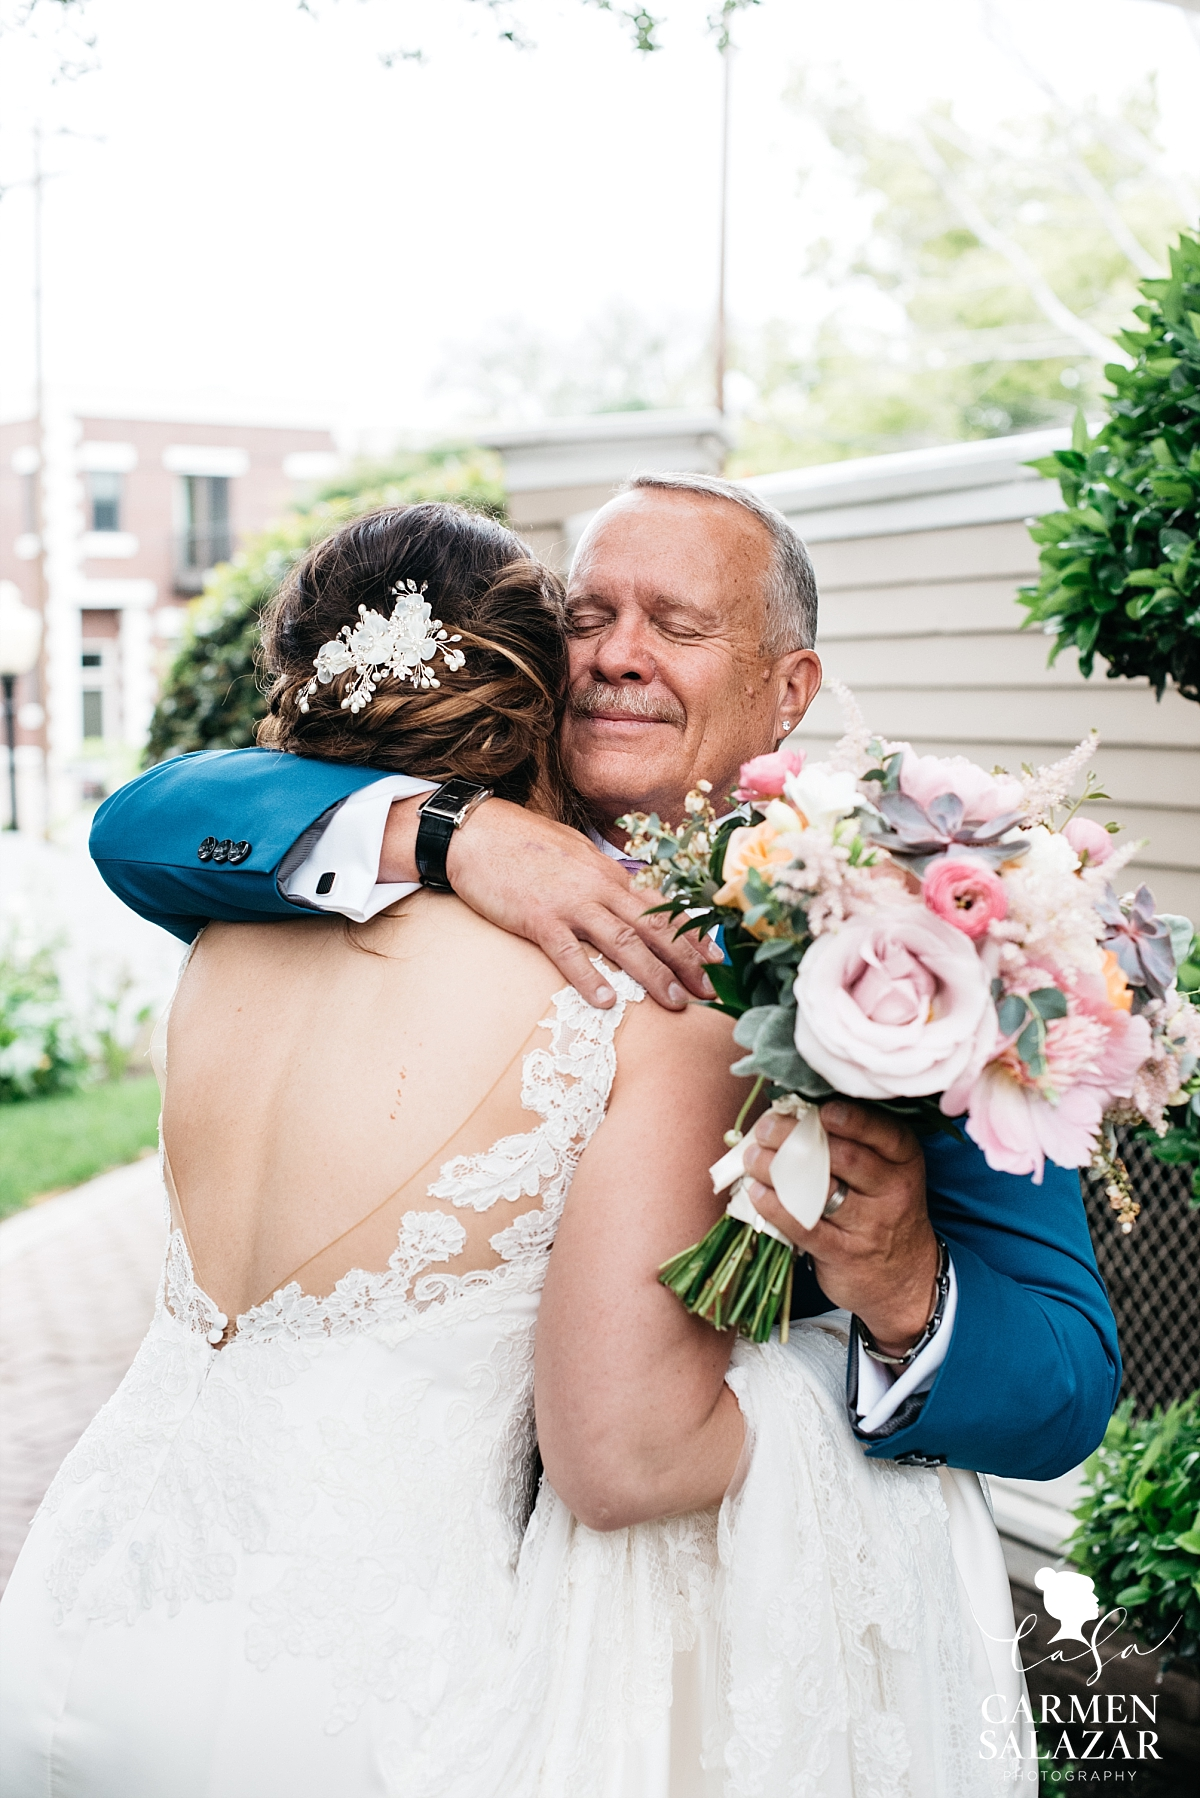 First look with dad at Vizcaya - Carmen Salazar